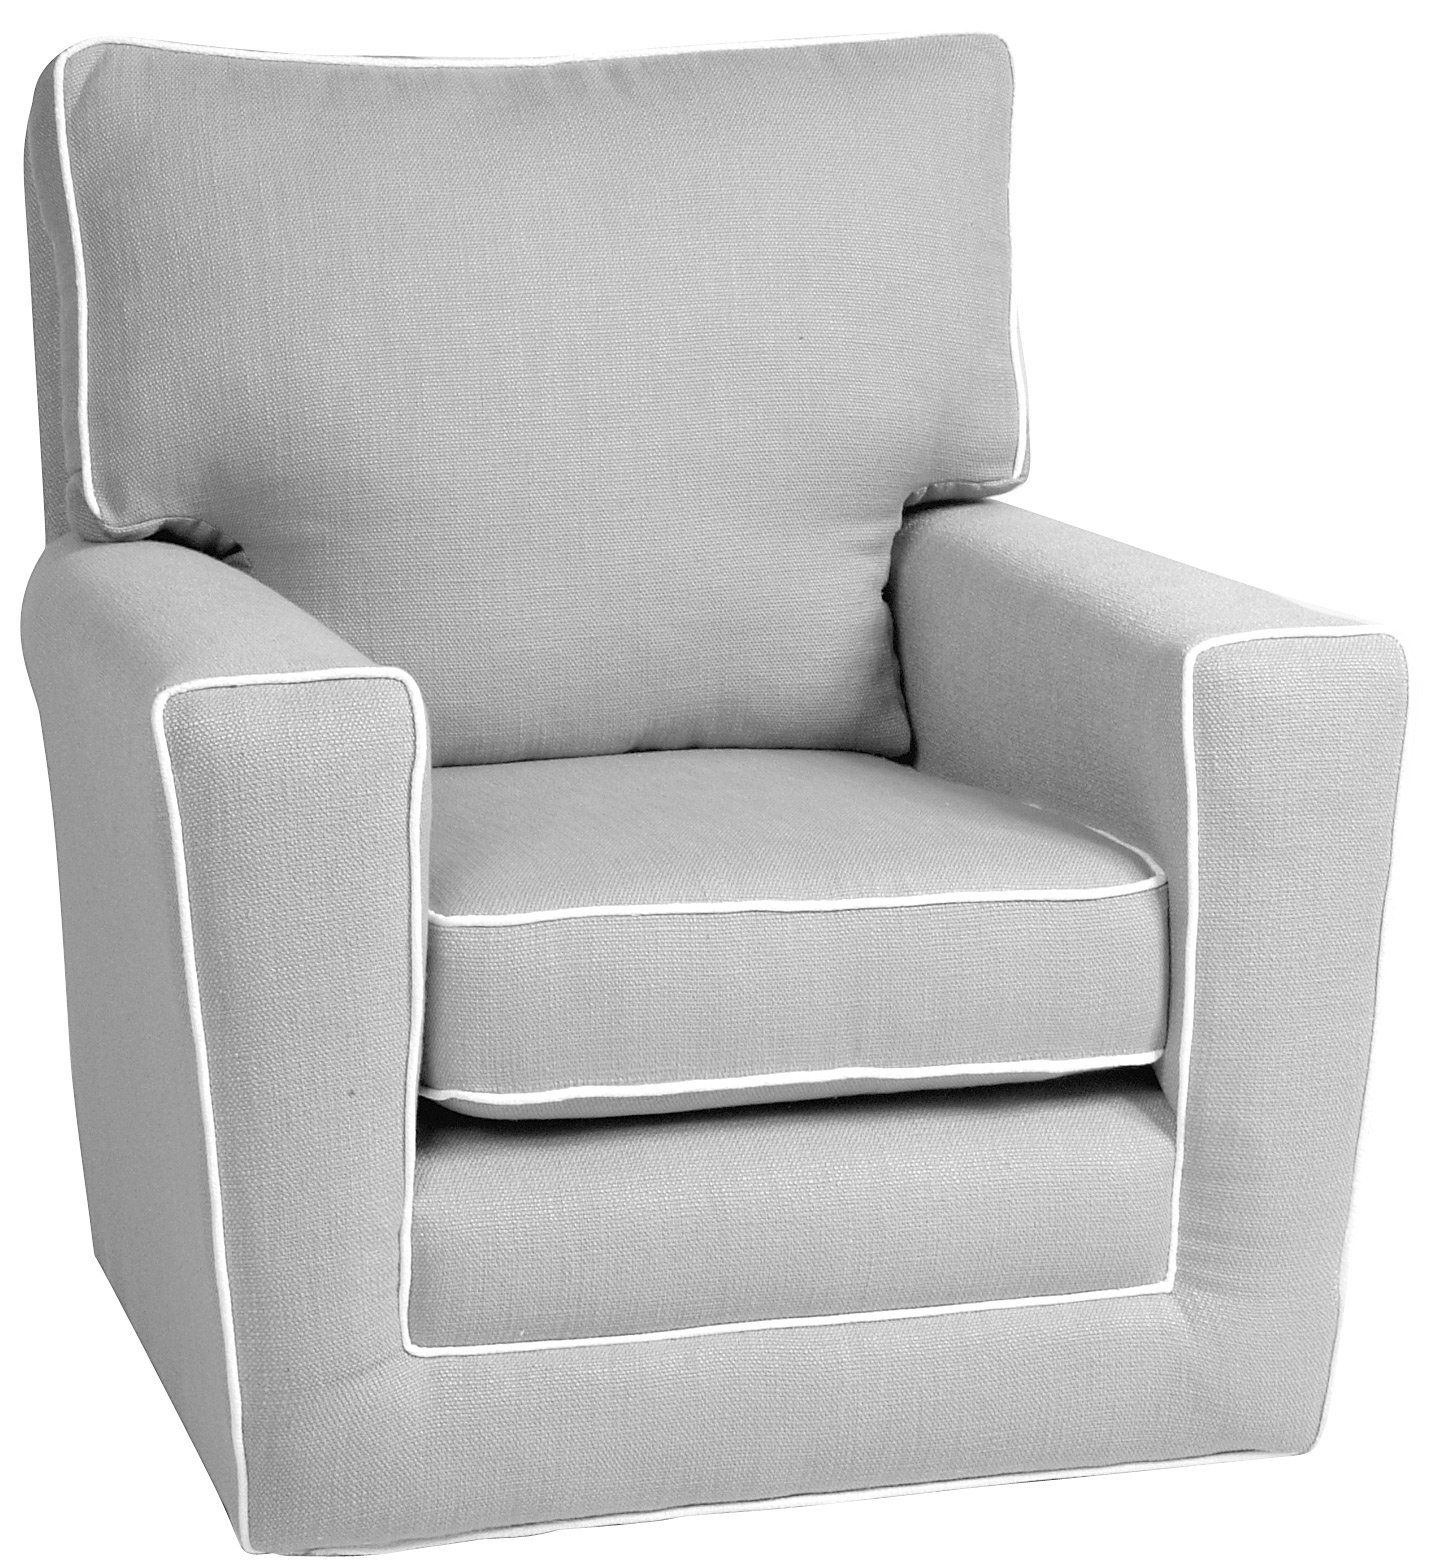 I Will Own A Little Castle Recliner For My Nursery No Way I'd Buy Pertaining To Katrina Grey Swivel Glider Chairs (Image 8 of 20)